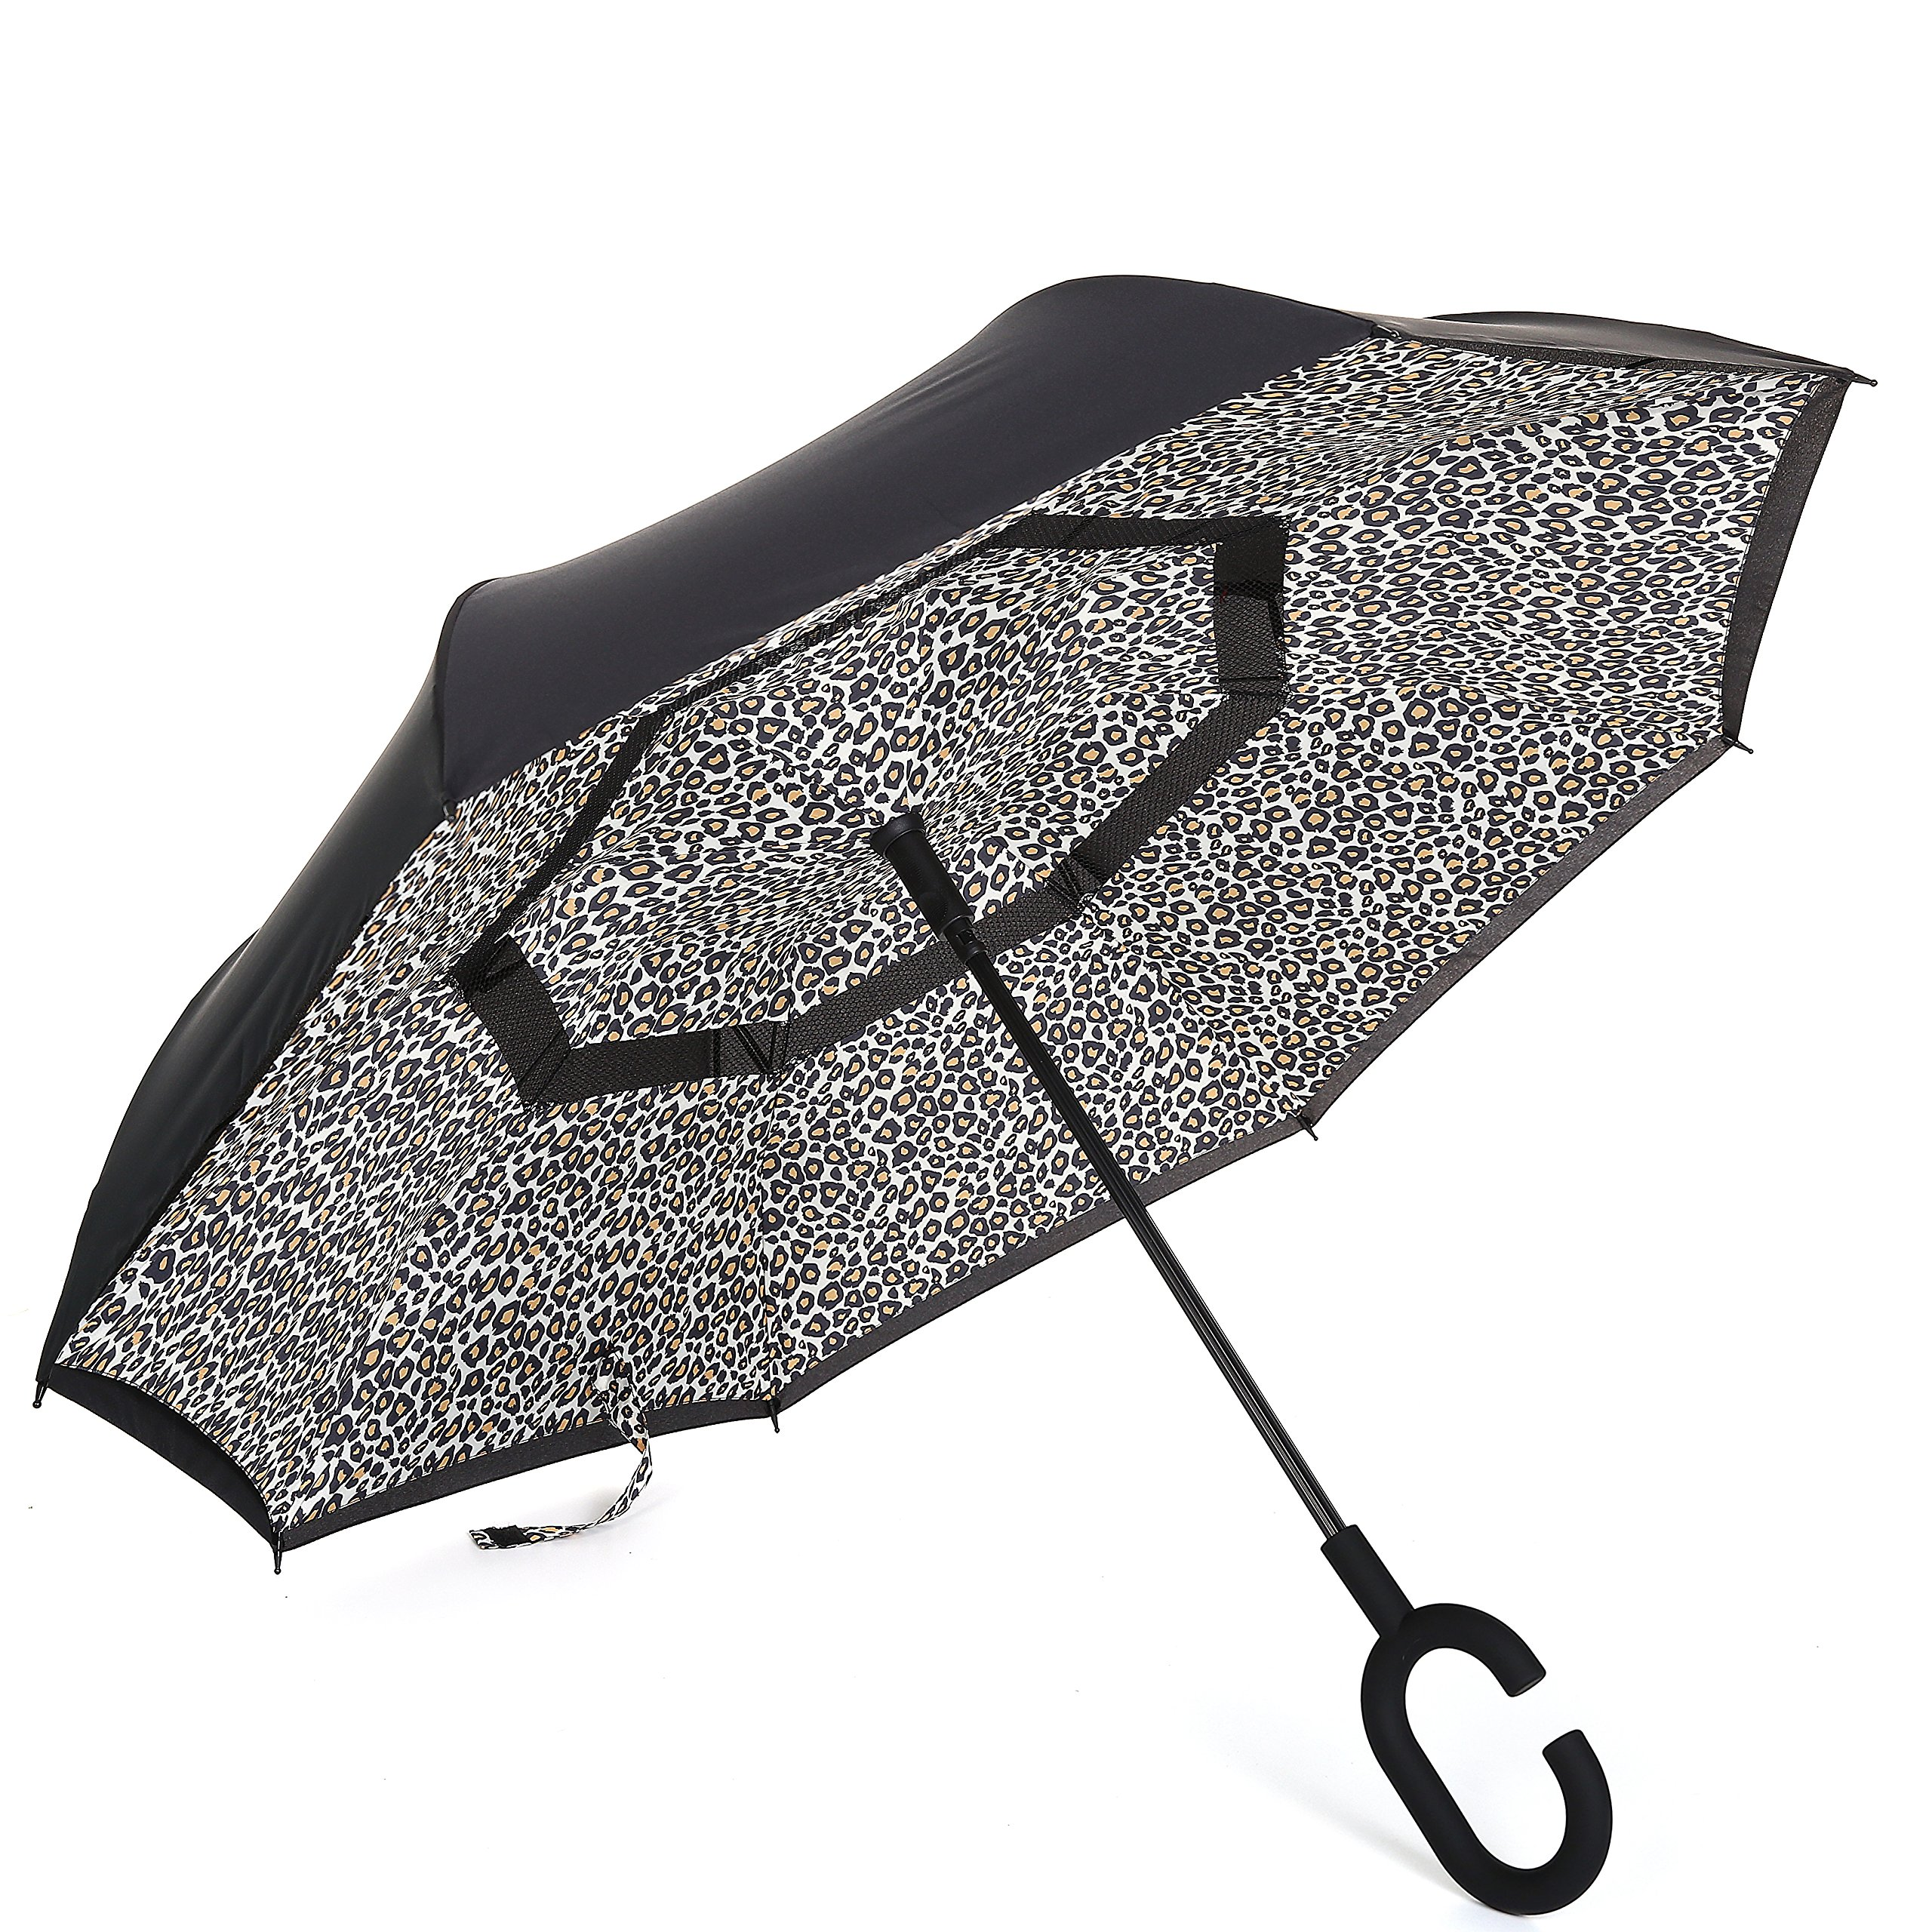 Barasol Reverse Folding Umbrella Travel Windproof Compact Umbrella Waterproof Double Canopy Vented Layer Inverted Close Golf Umbrella Lightweight for Man Women, Manually Open Leopard by Barasol (Image #1)